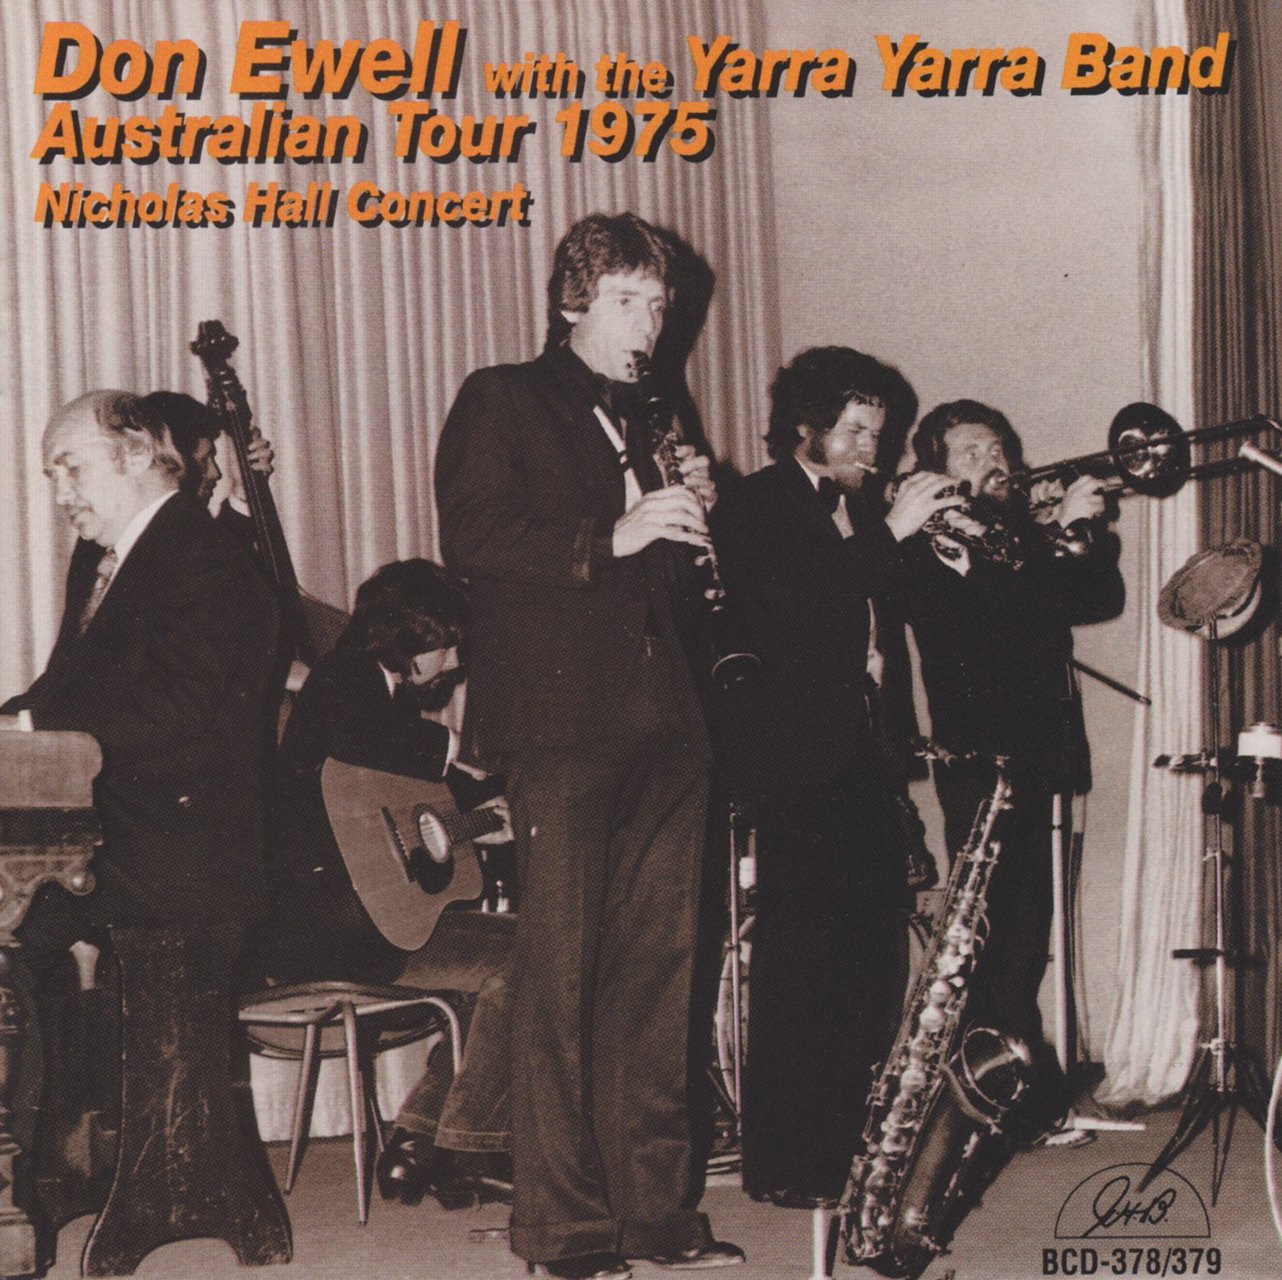 Nicholas Hall Concert by Don Ewell (1998-12-15) by GHB Records